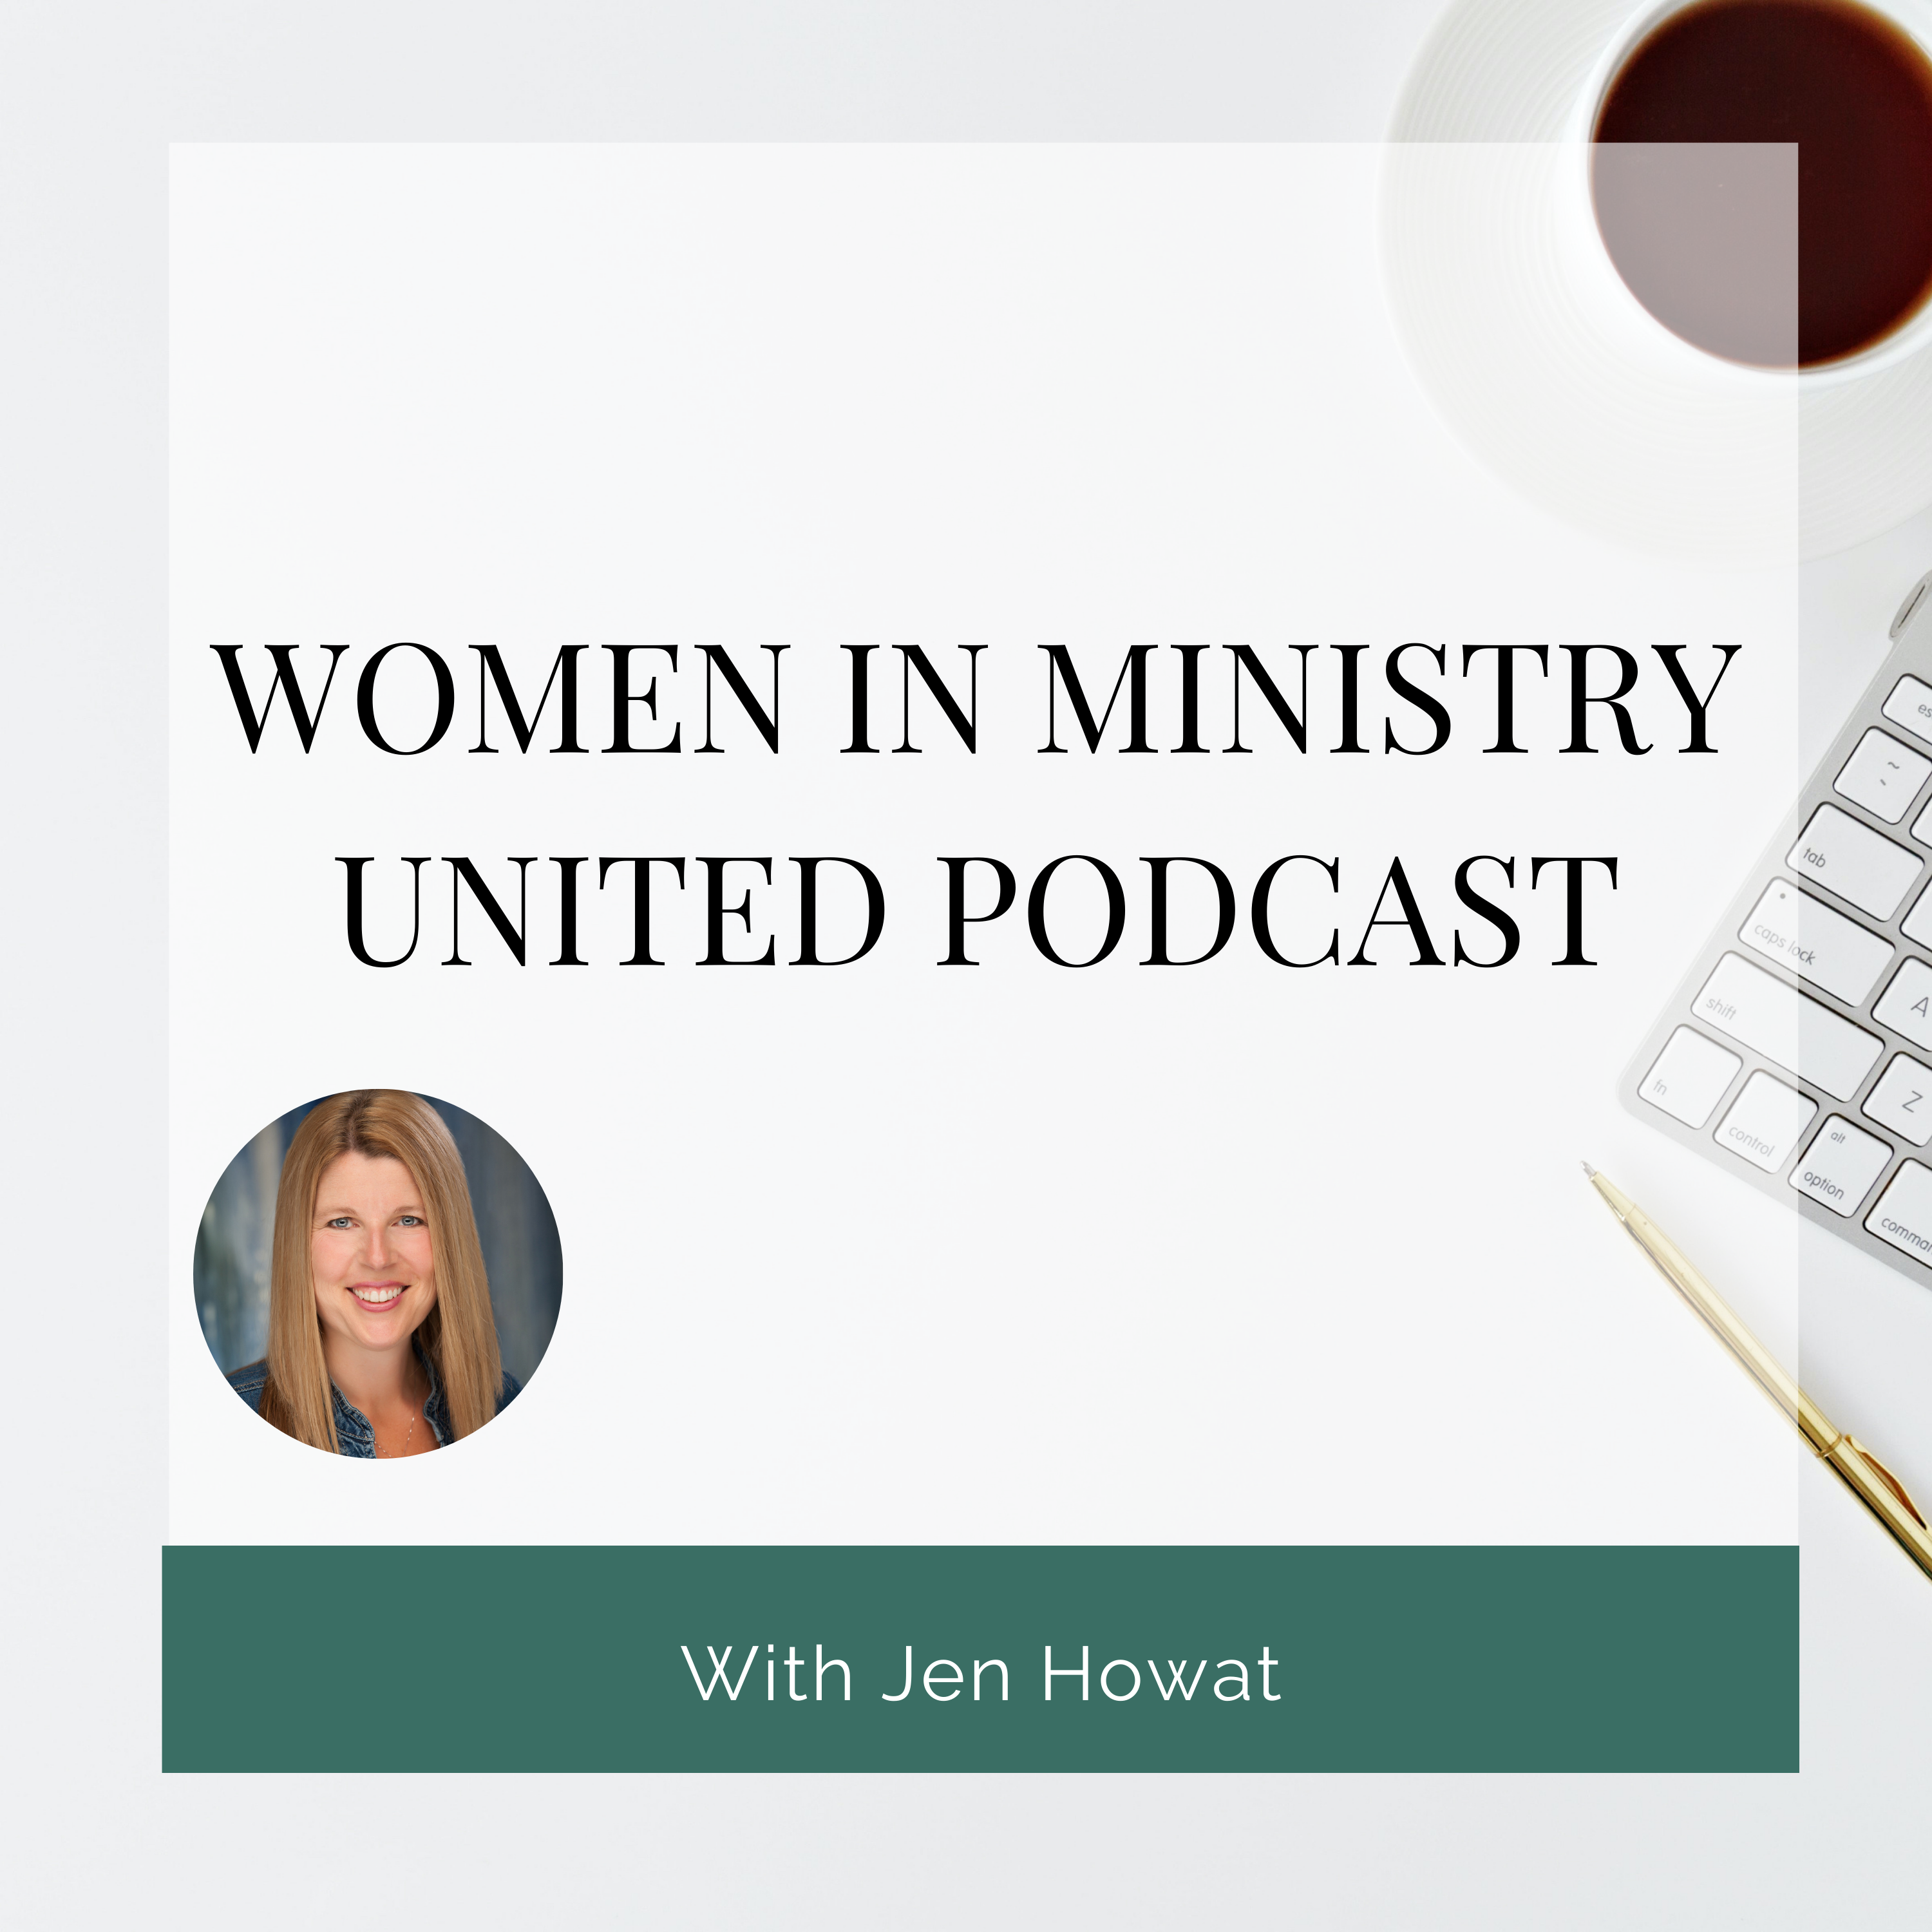 Women in Ministry United Podcast show art